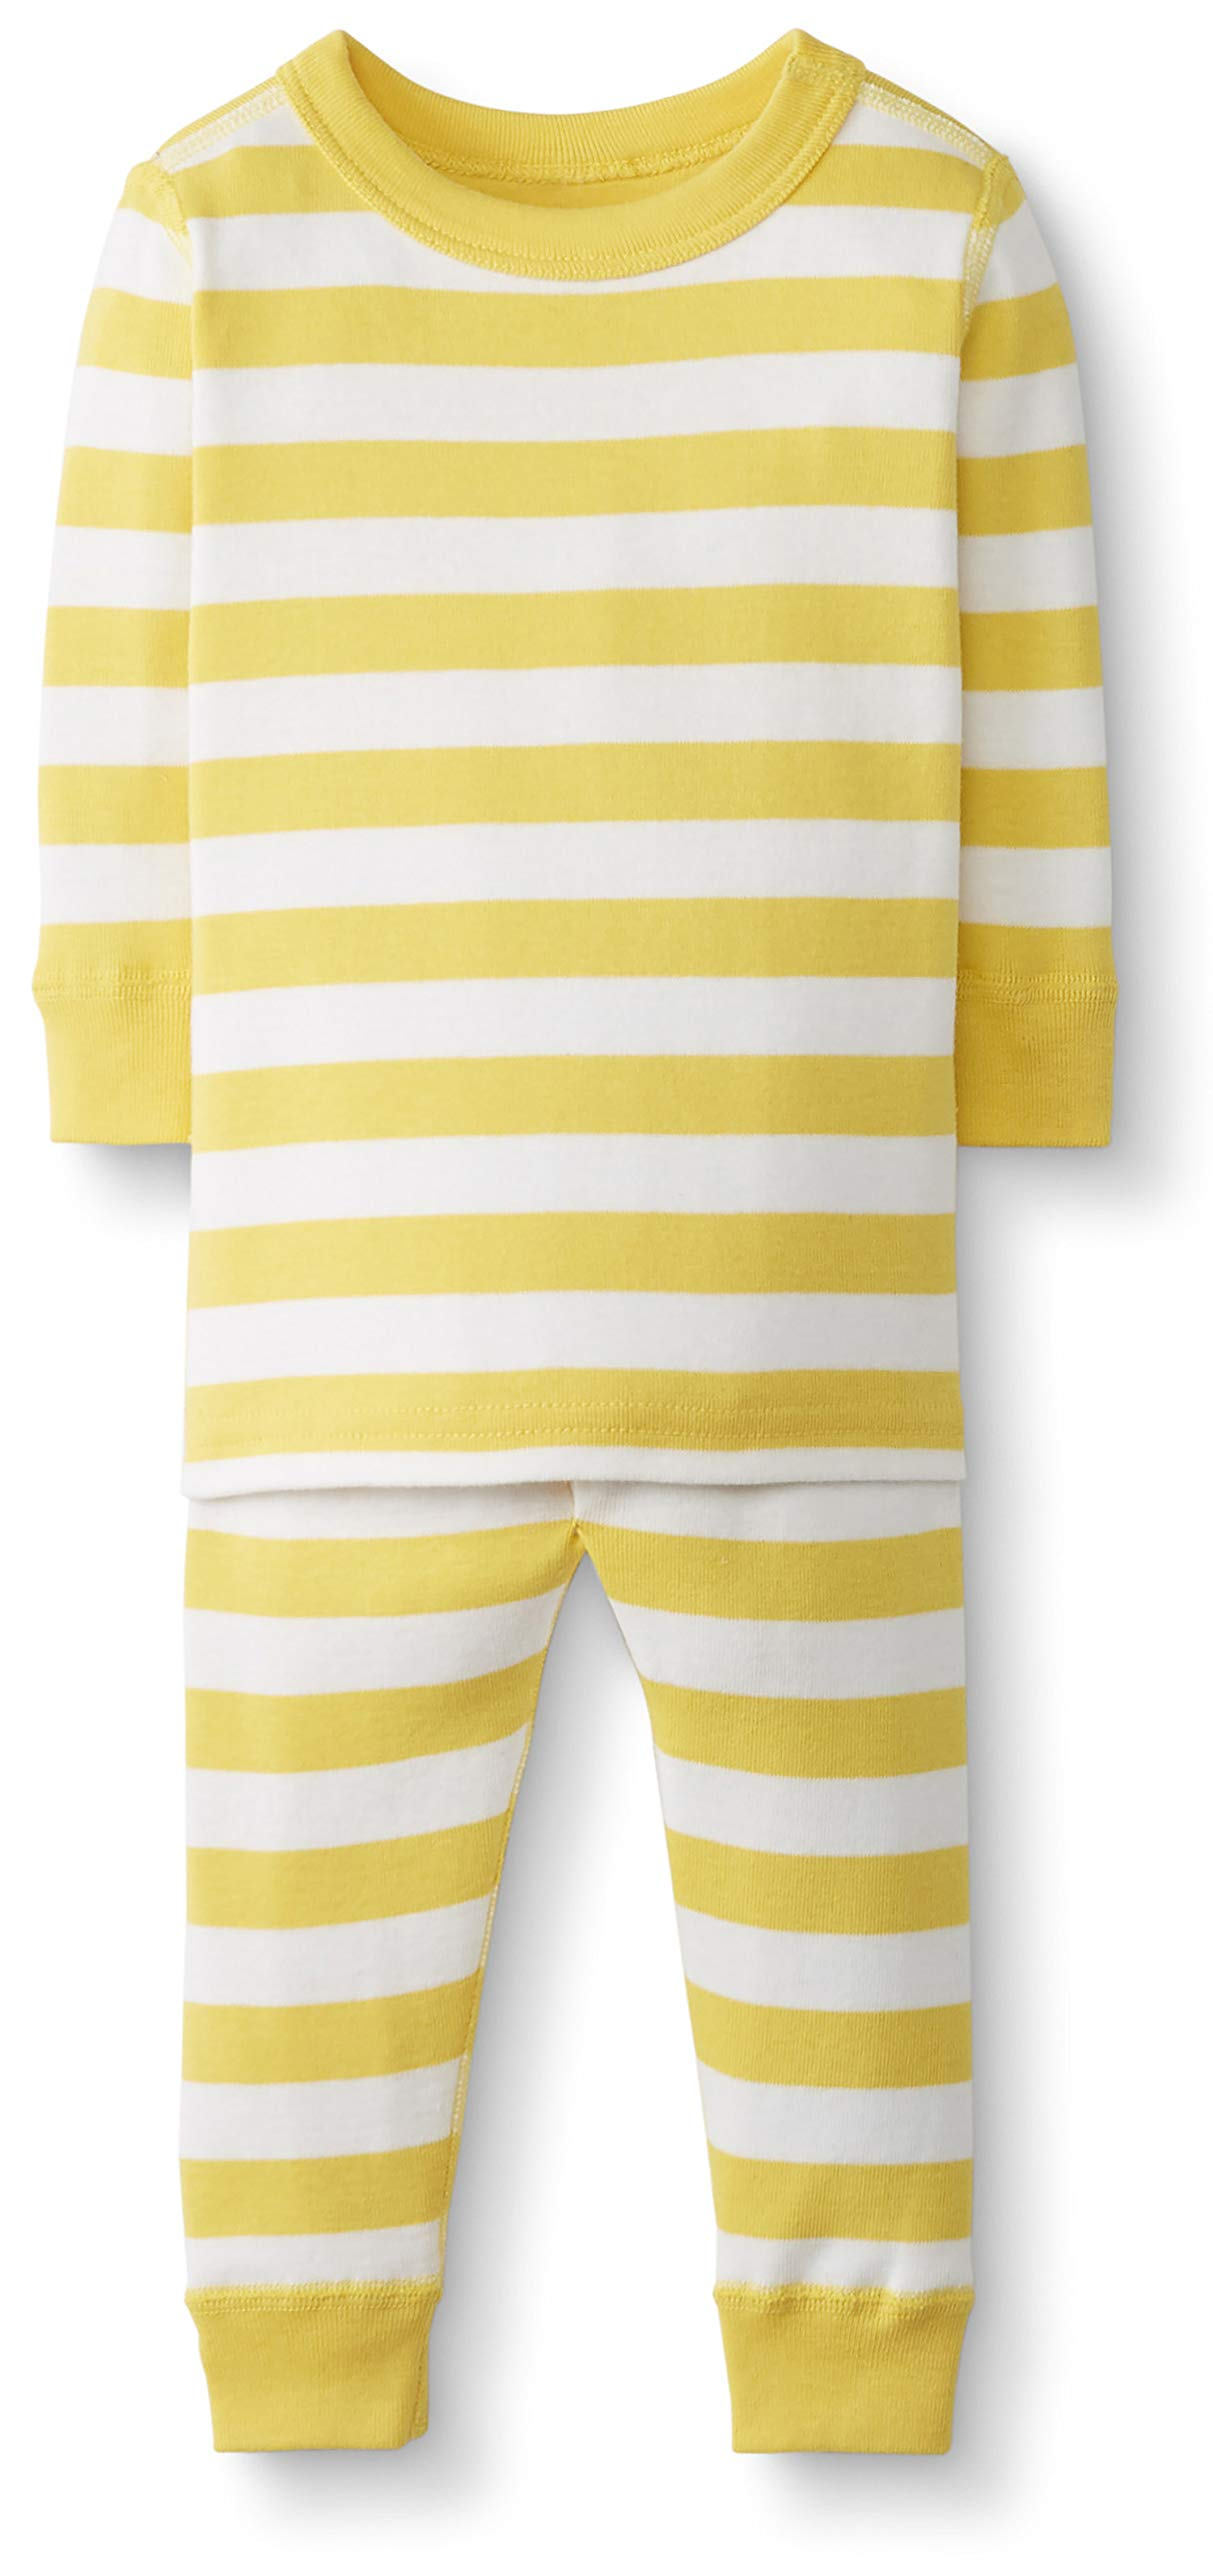 Hanna Andersson Baby/Toddler 2-Piece Organic Cotton Pajama Set Swedish Yellow/Hanna White -50 by Hanna Andersson